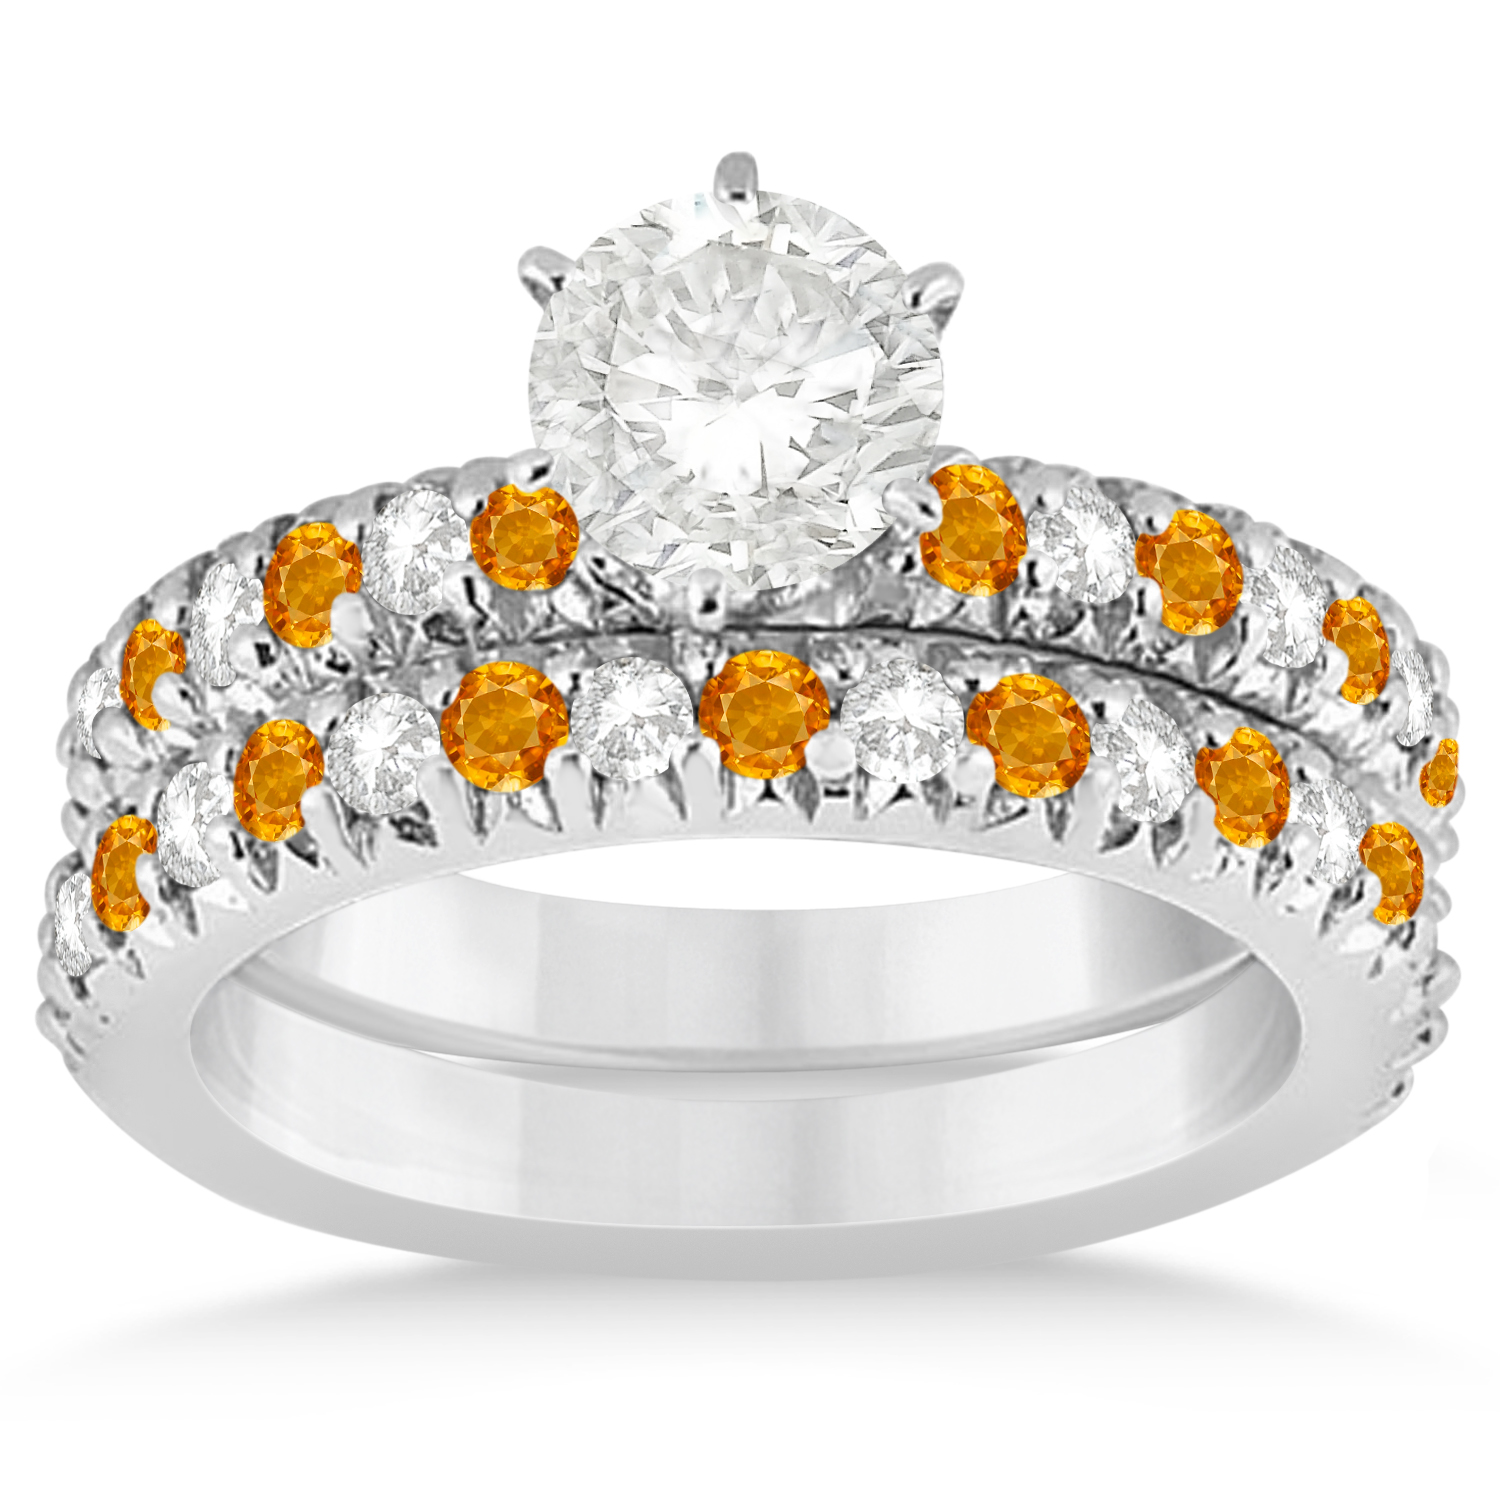 Citrine and Diamond Accented Bridal Set 14k White Gold 1.14ct